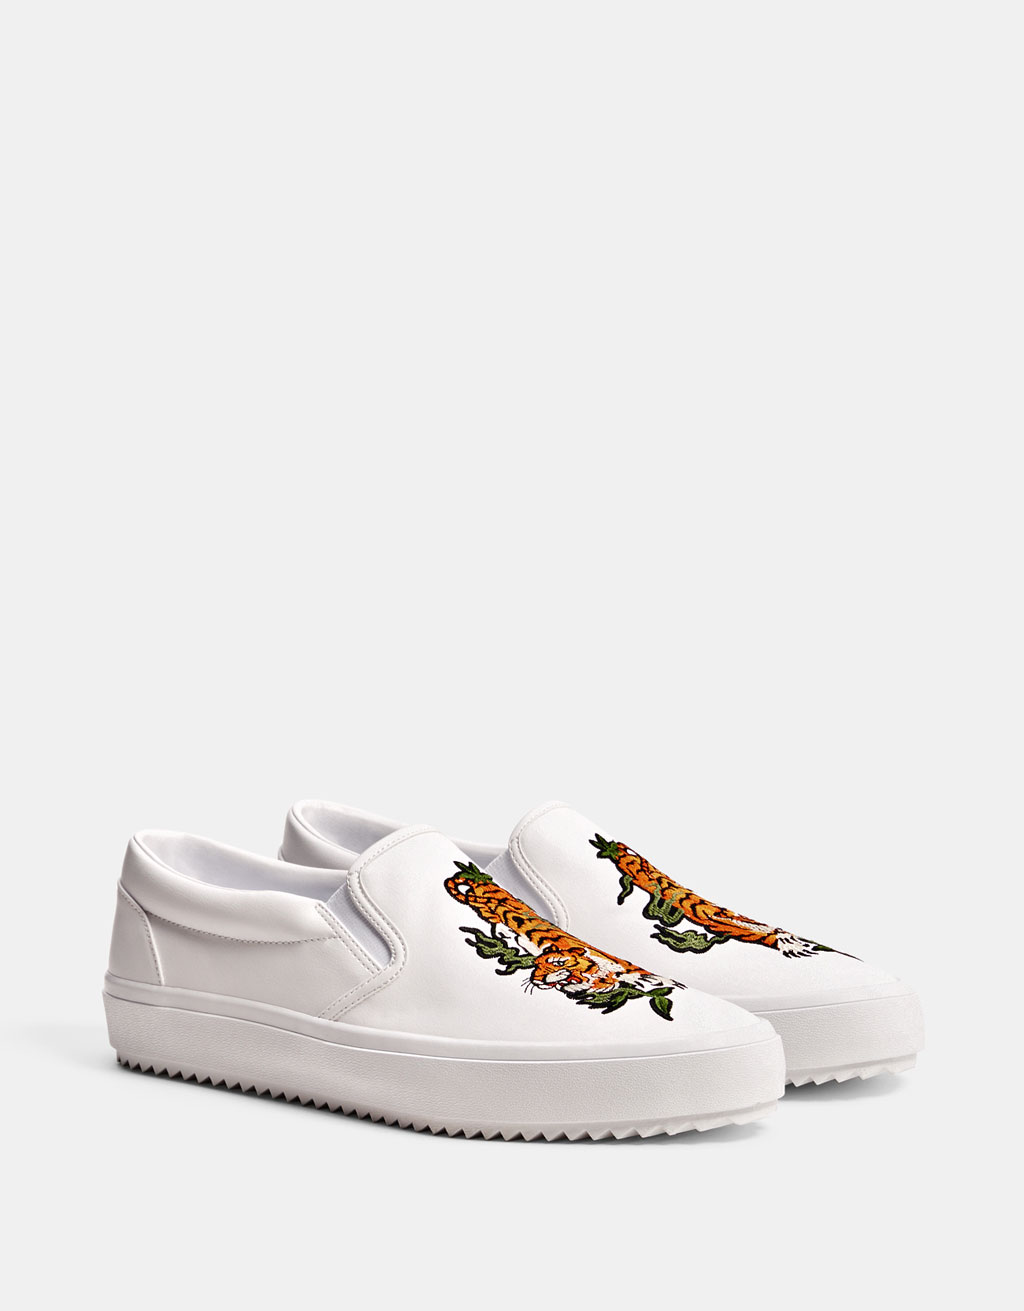 Men's tiger embroidered sneakers